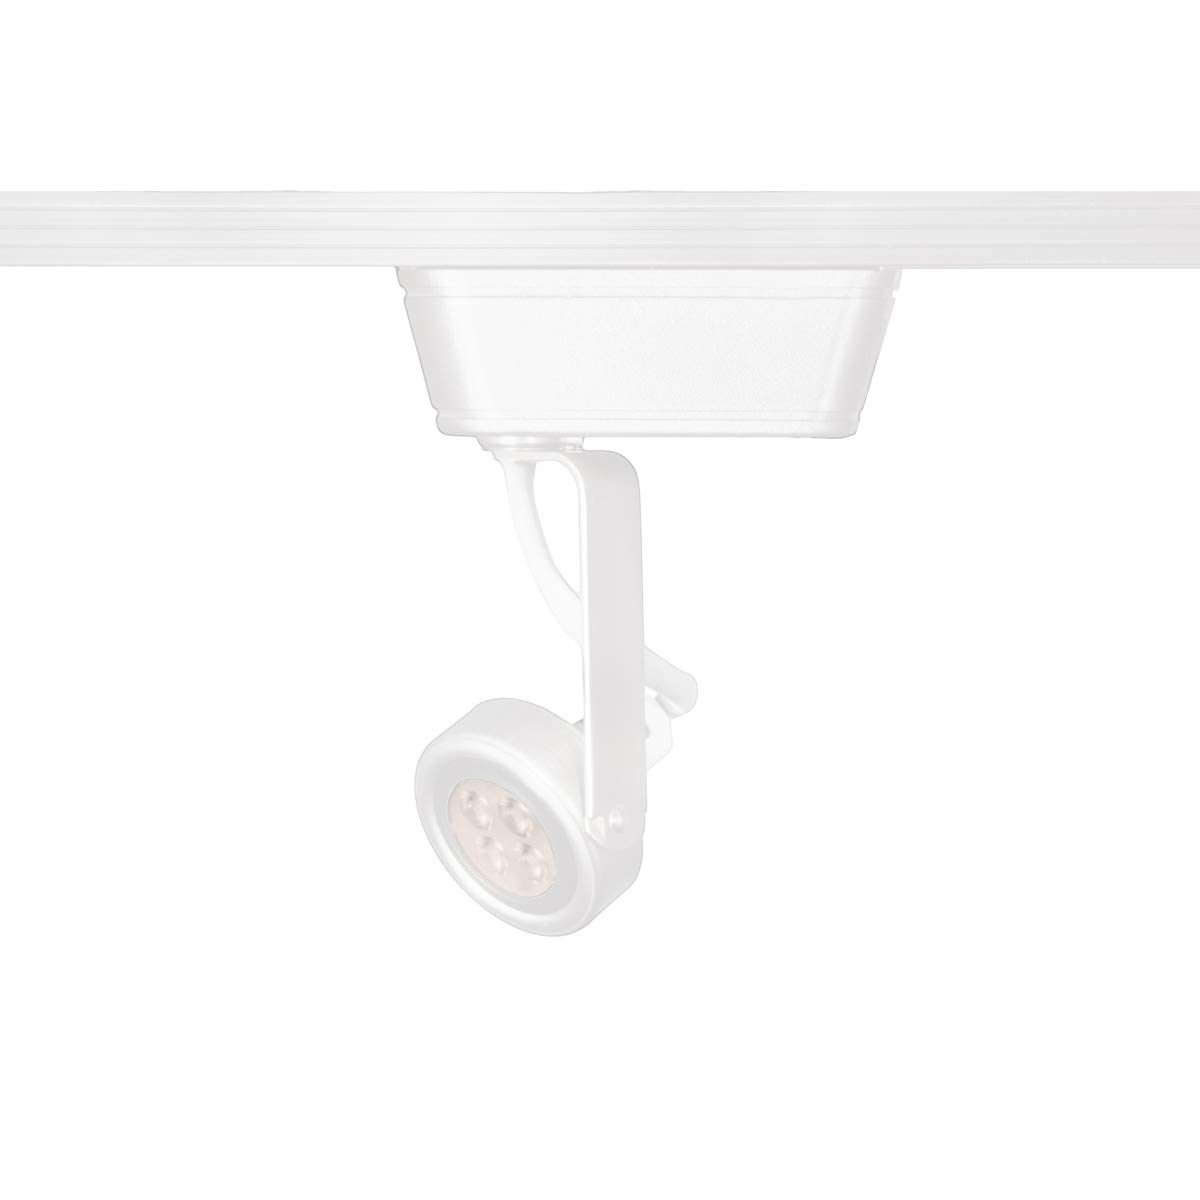 WAC Lighting HHT-180LED-WT Ht-180 Led Low Voltage Track Fixture, White